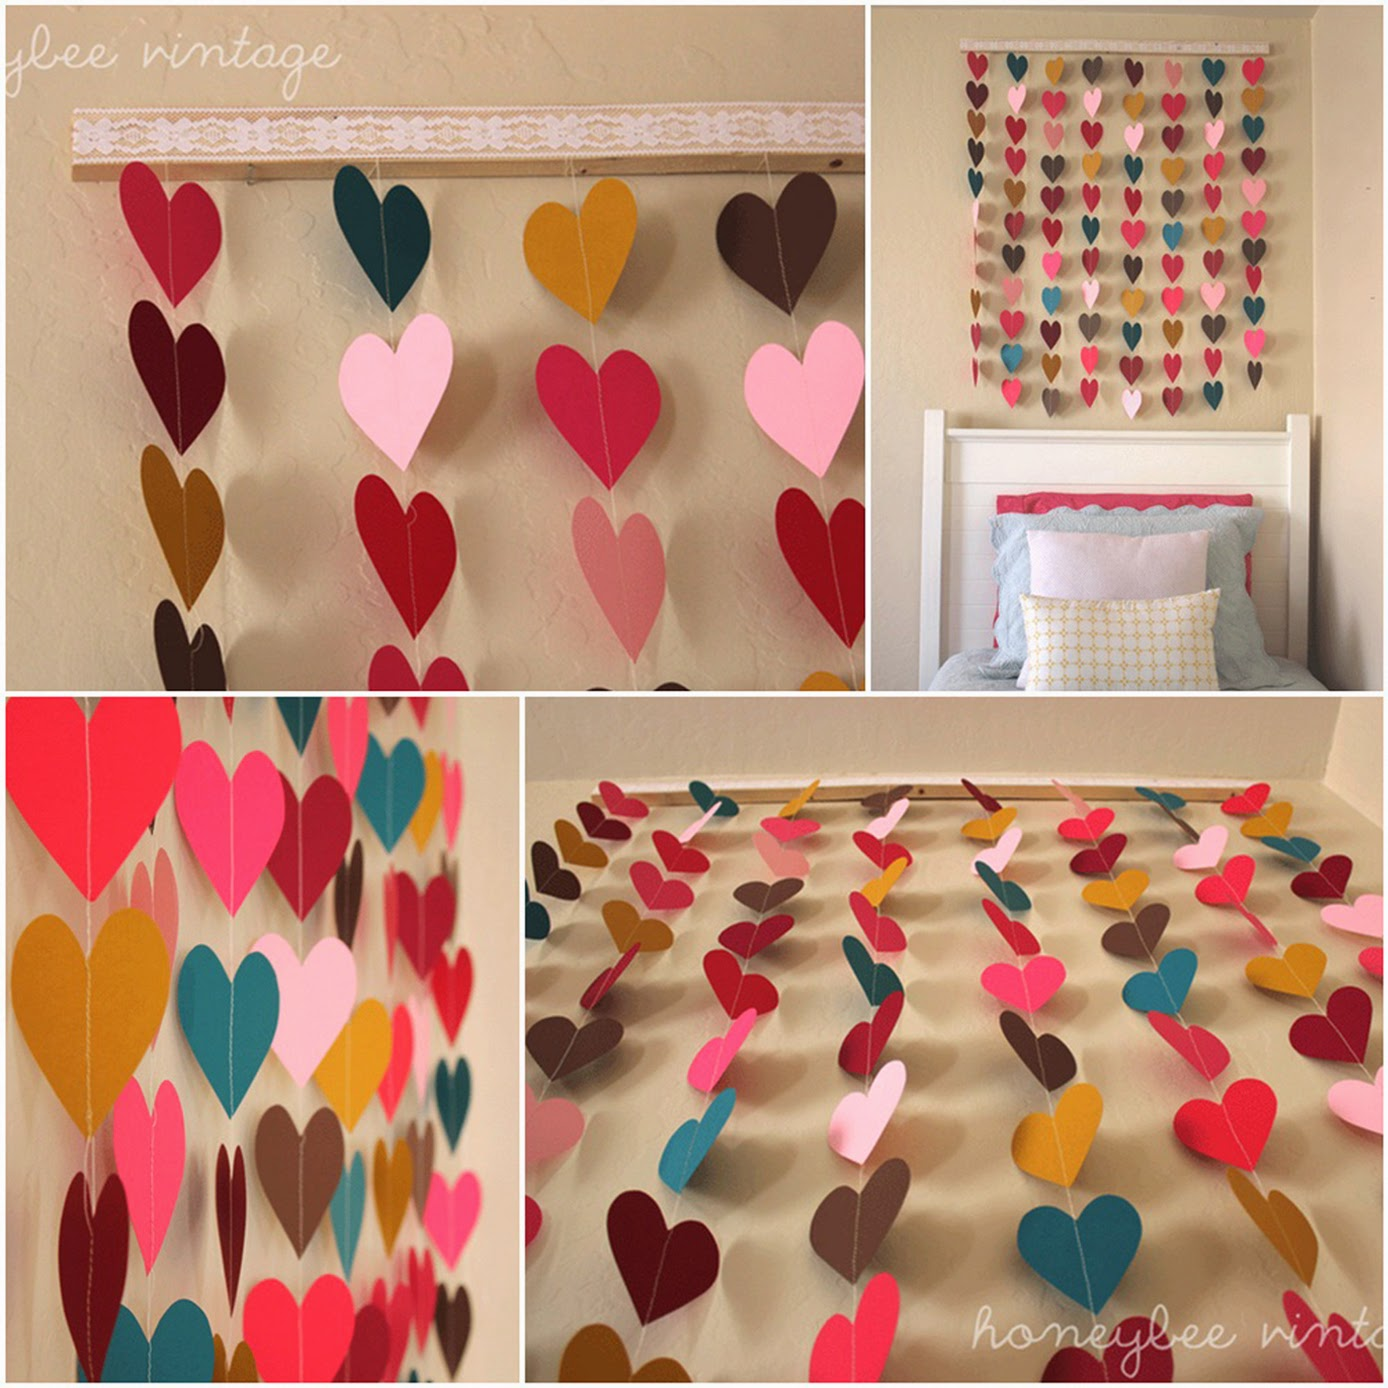 تزیین دیواراتاق باکاغذکشی 23 Ideas To Decorate Girls Room With Butterflies - Shelterness